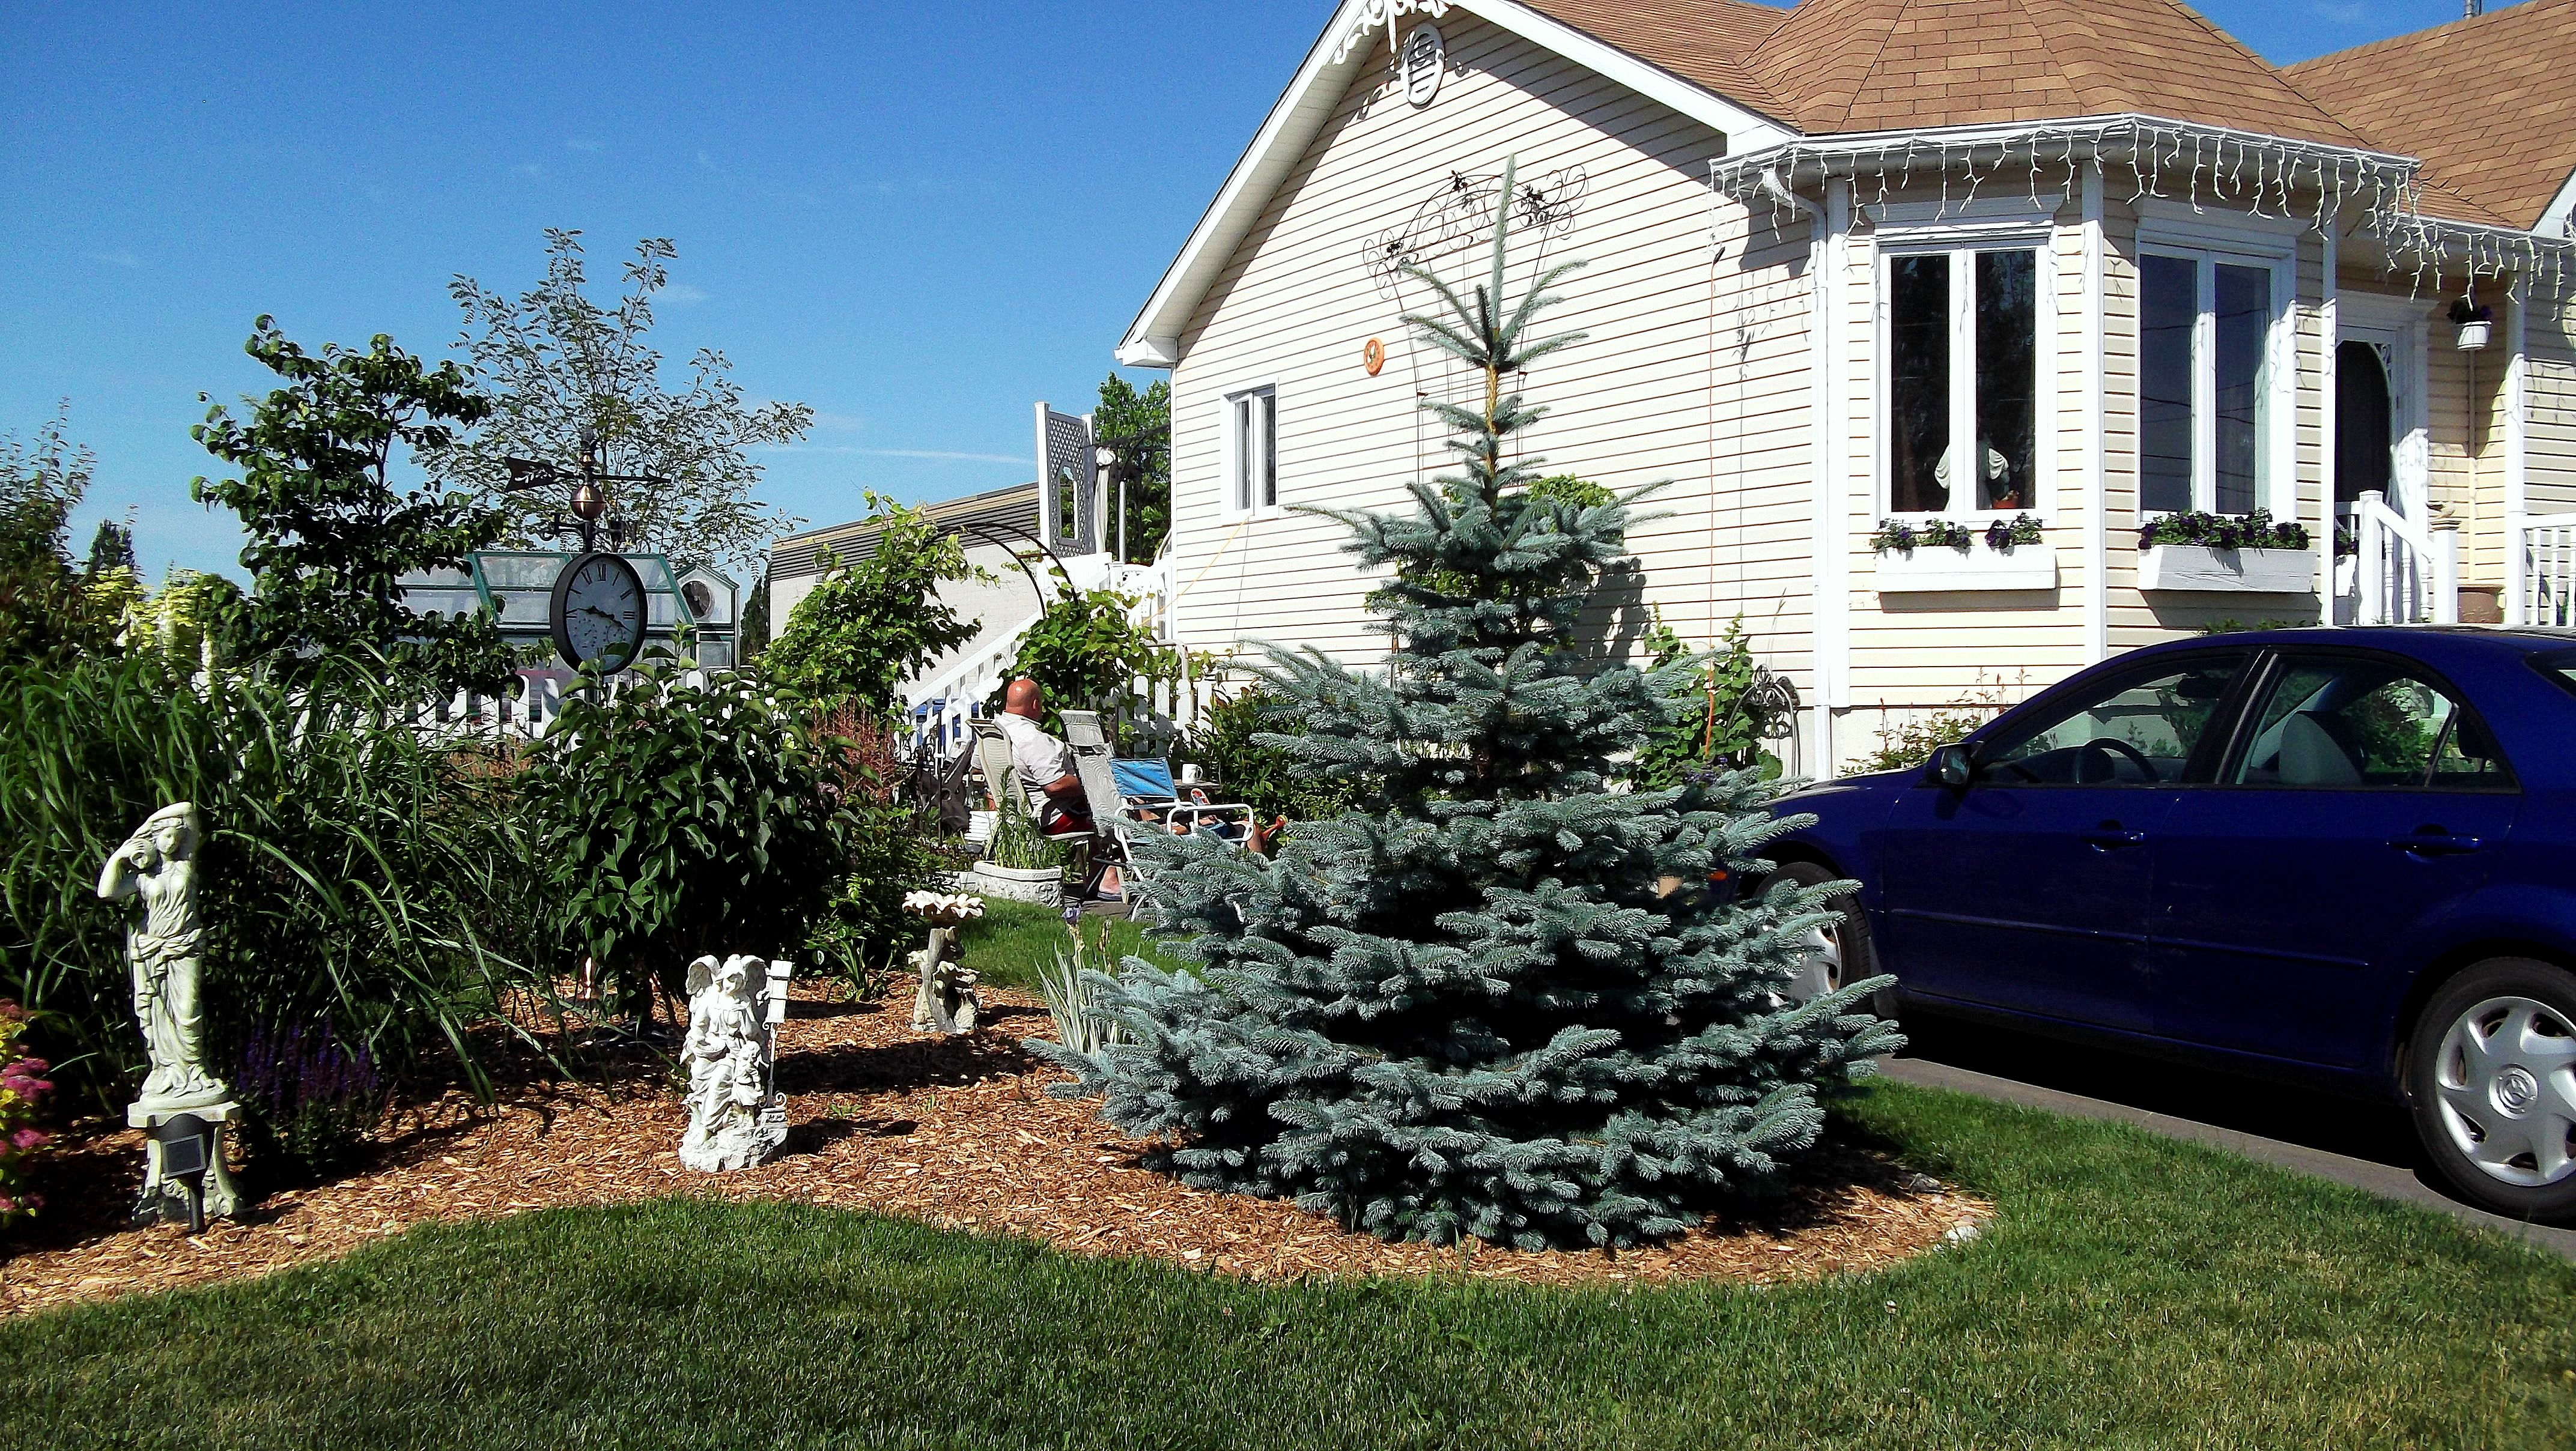 Glancing Encore Blue Anne Encore Blue Anne De Baby Blue S Spruce Trees Baby Blue S Spruce Images houzz-02 Baby Blue Eyes Spruce